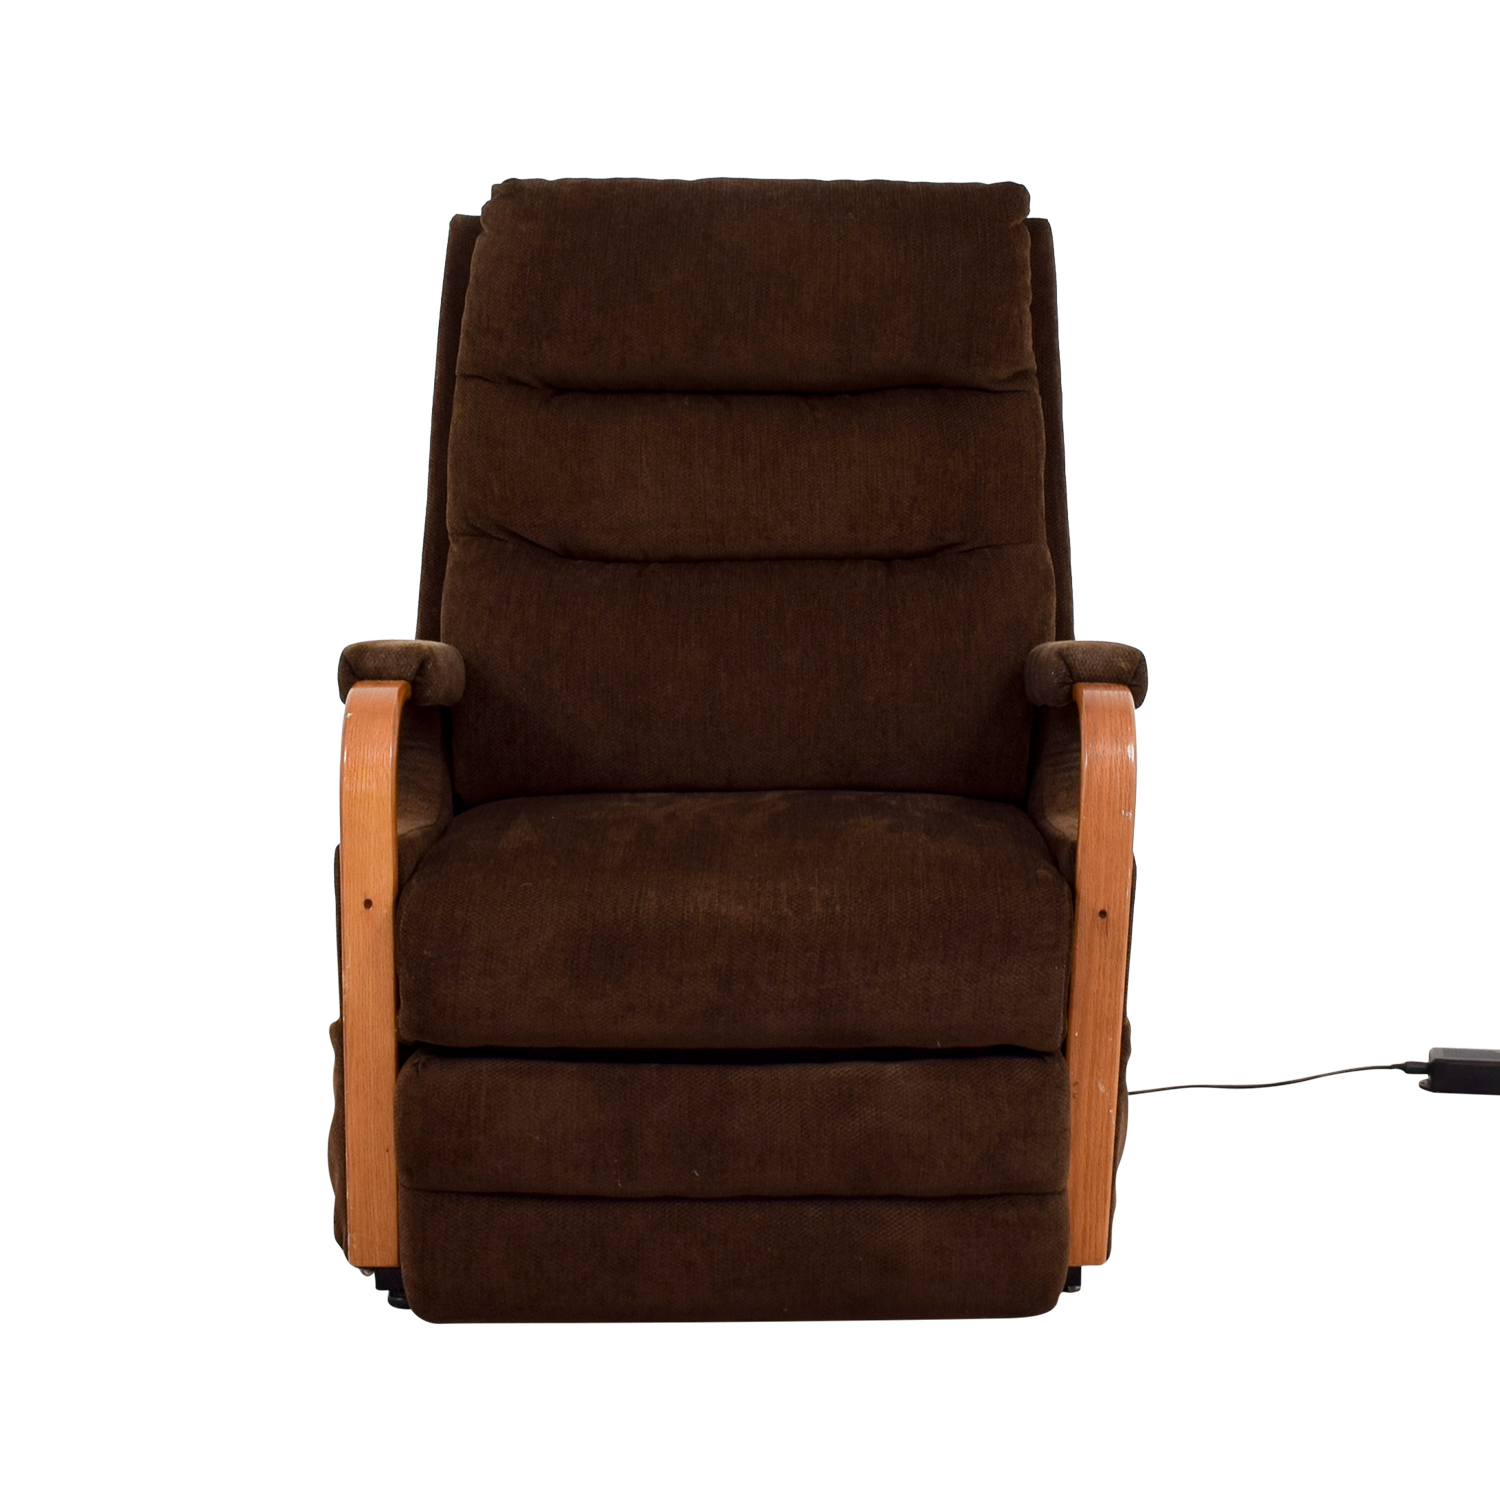 Bobs Furniture Brown Remote Control Recliner sale